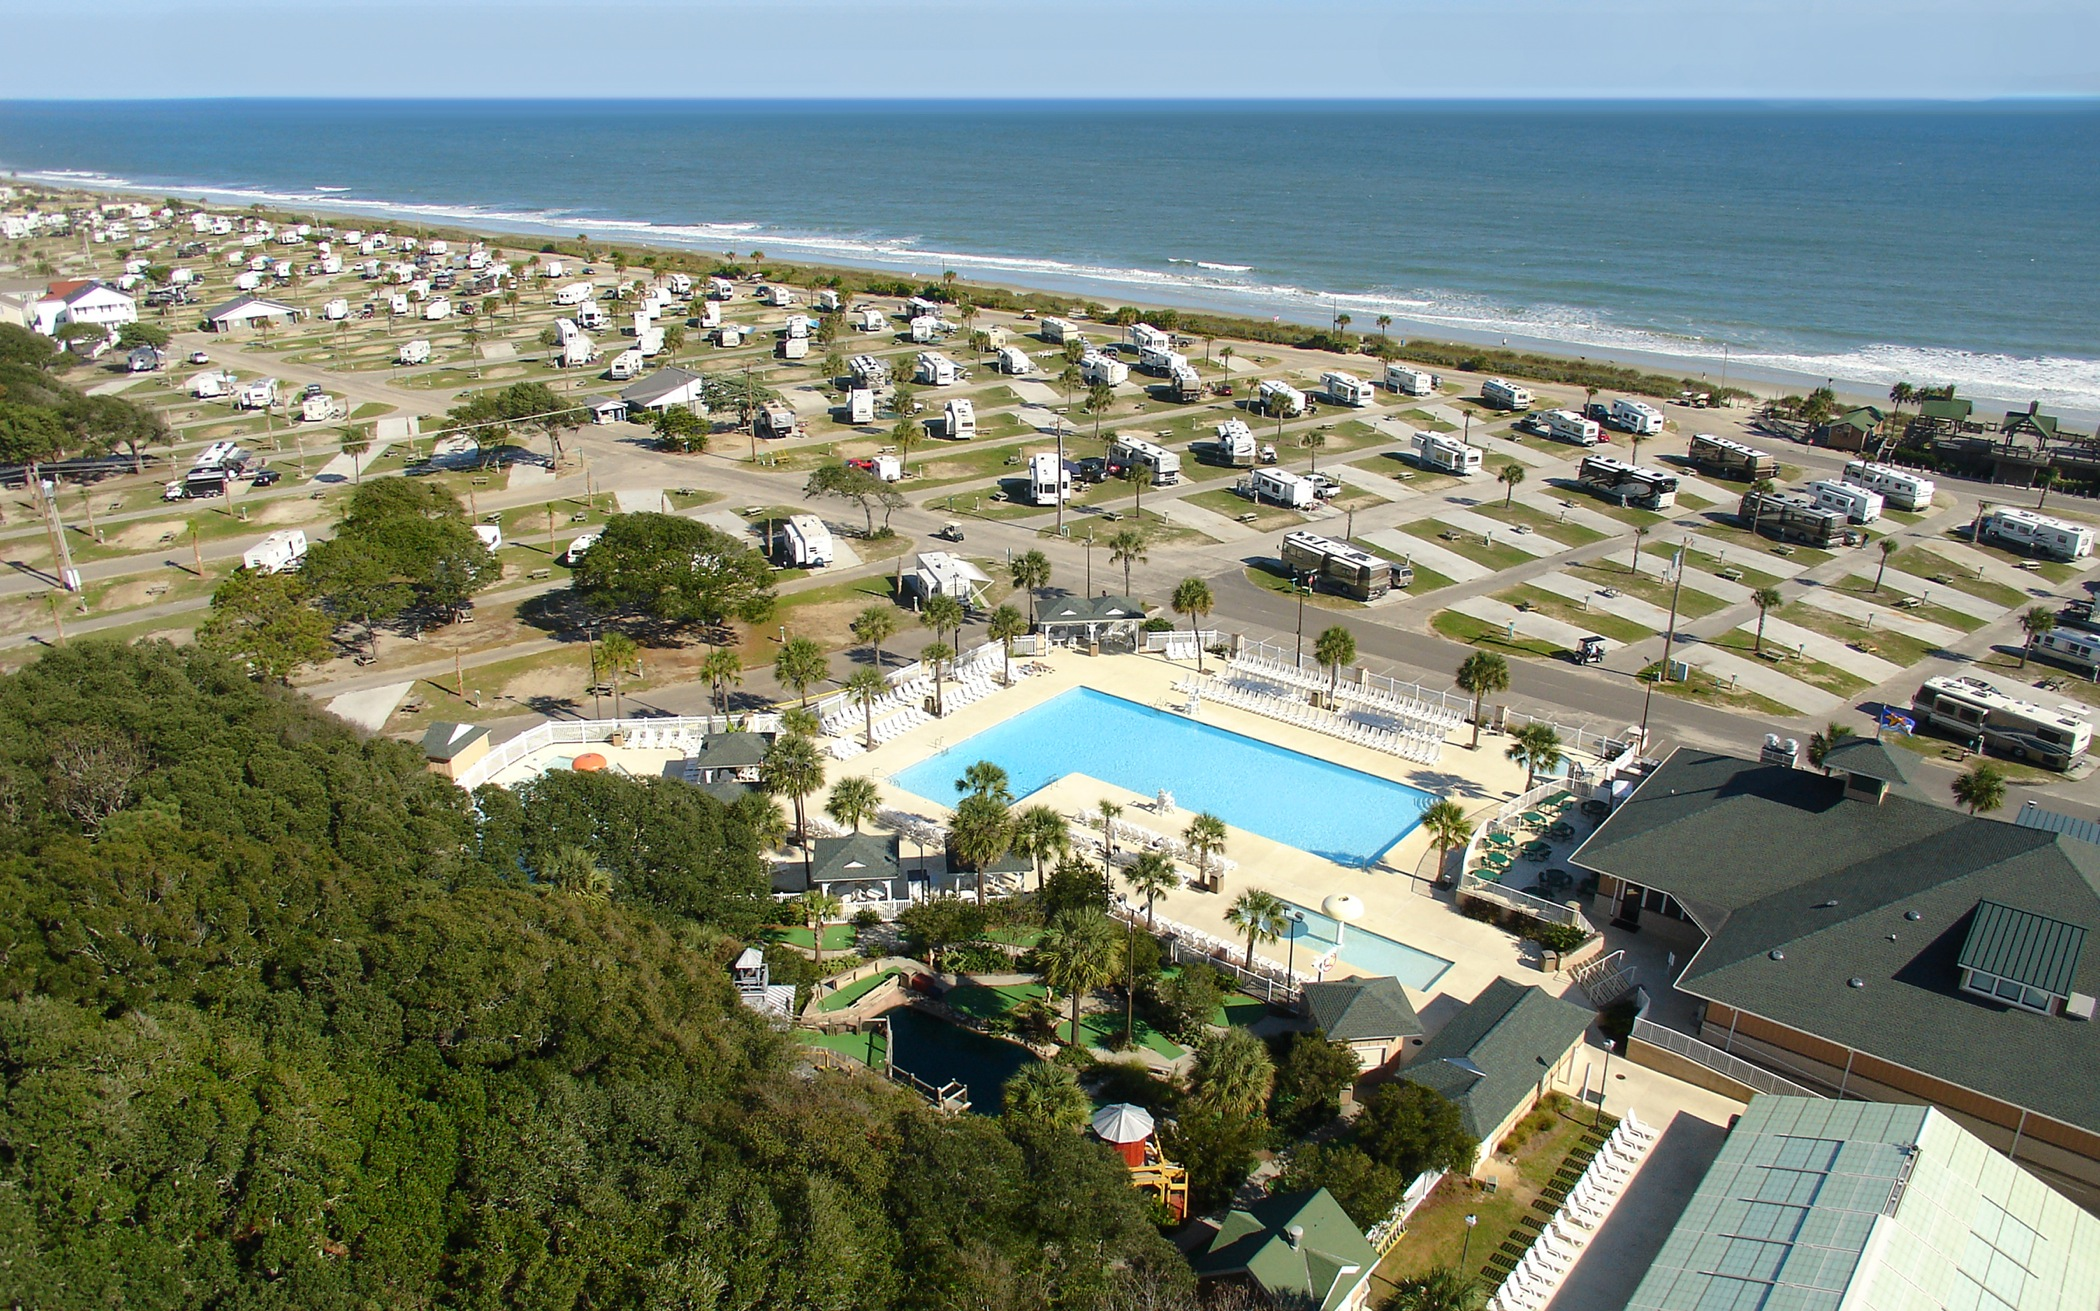 Ocean Lakes Family Campground One Of The Top Rated Parks